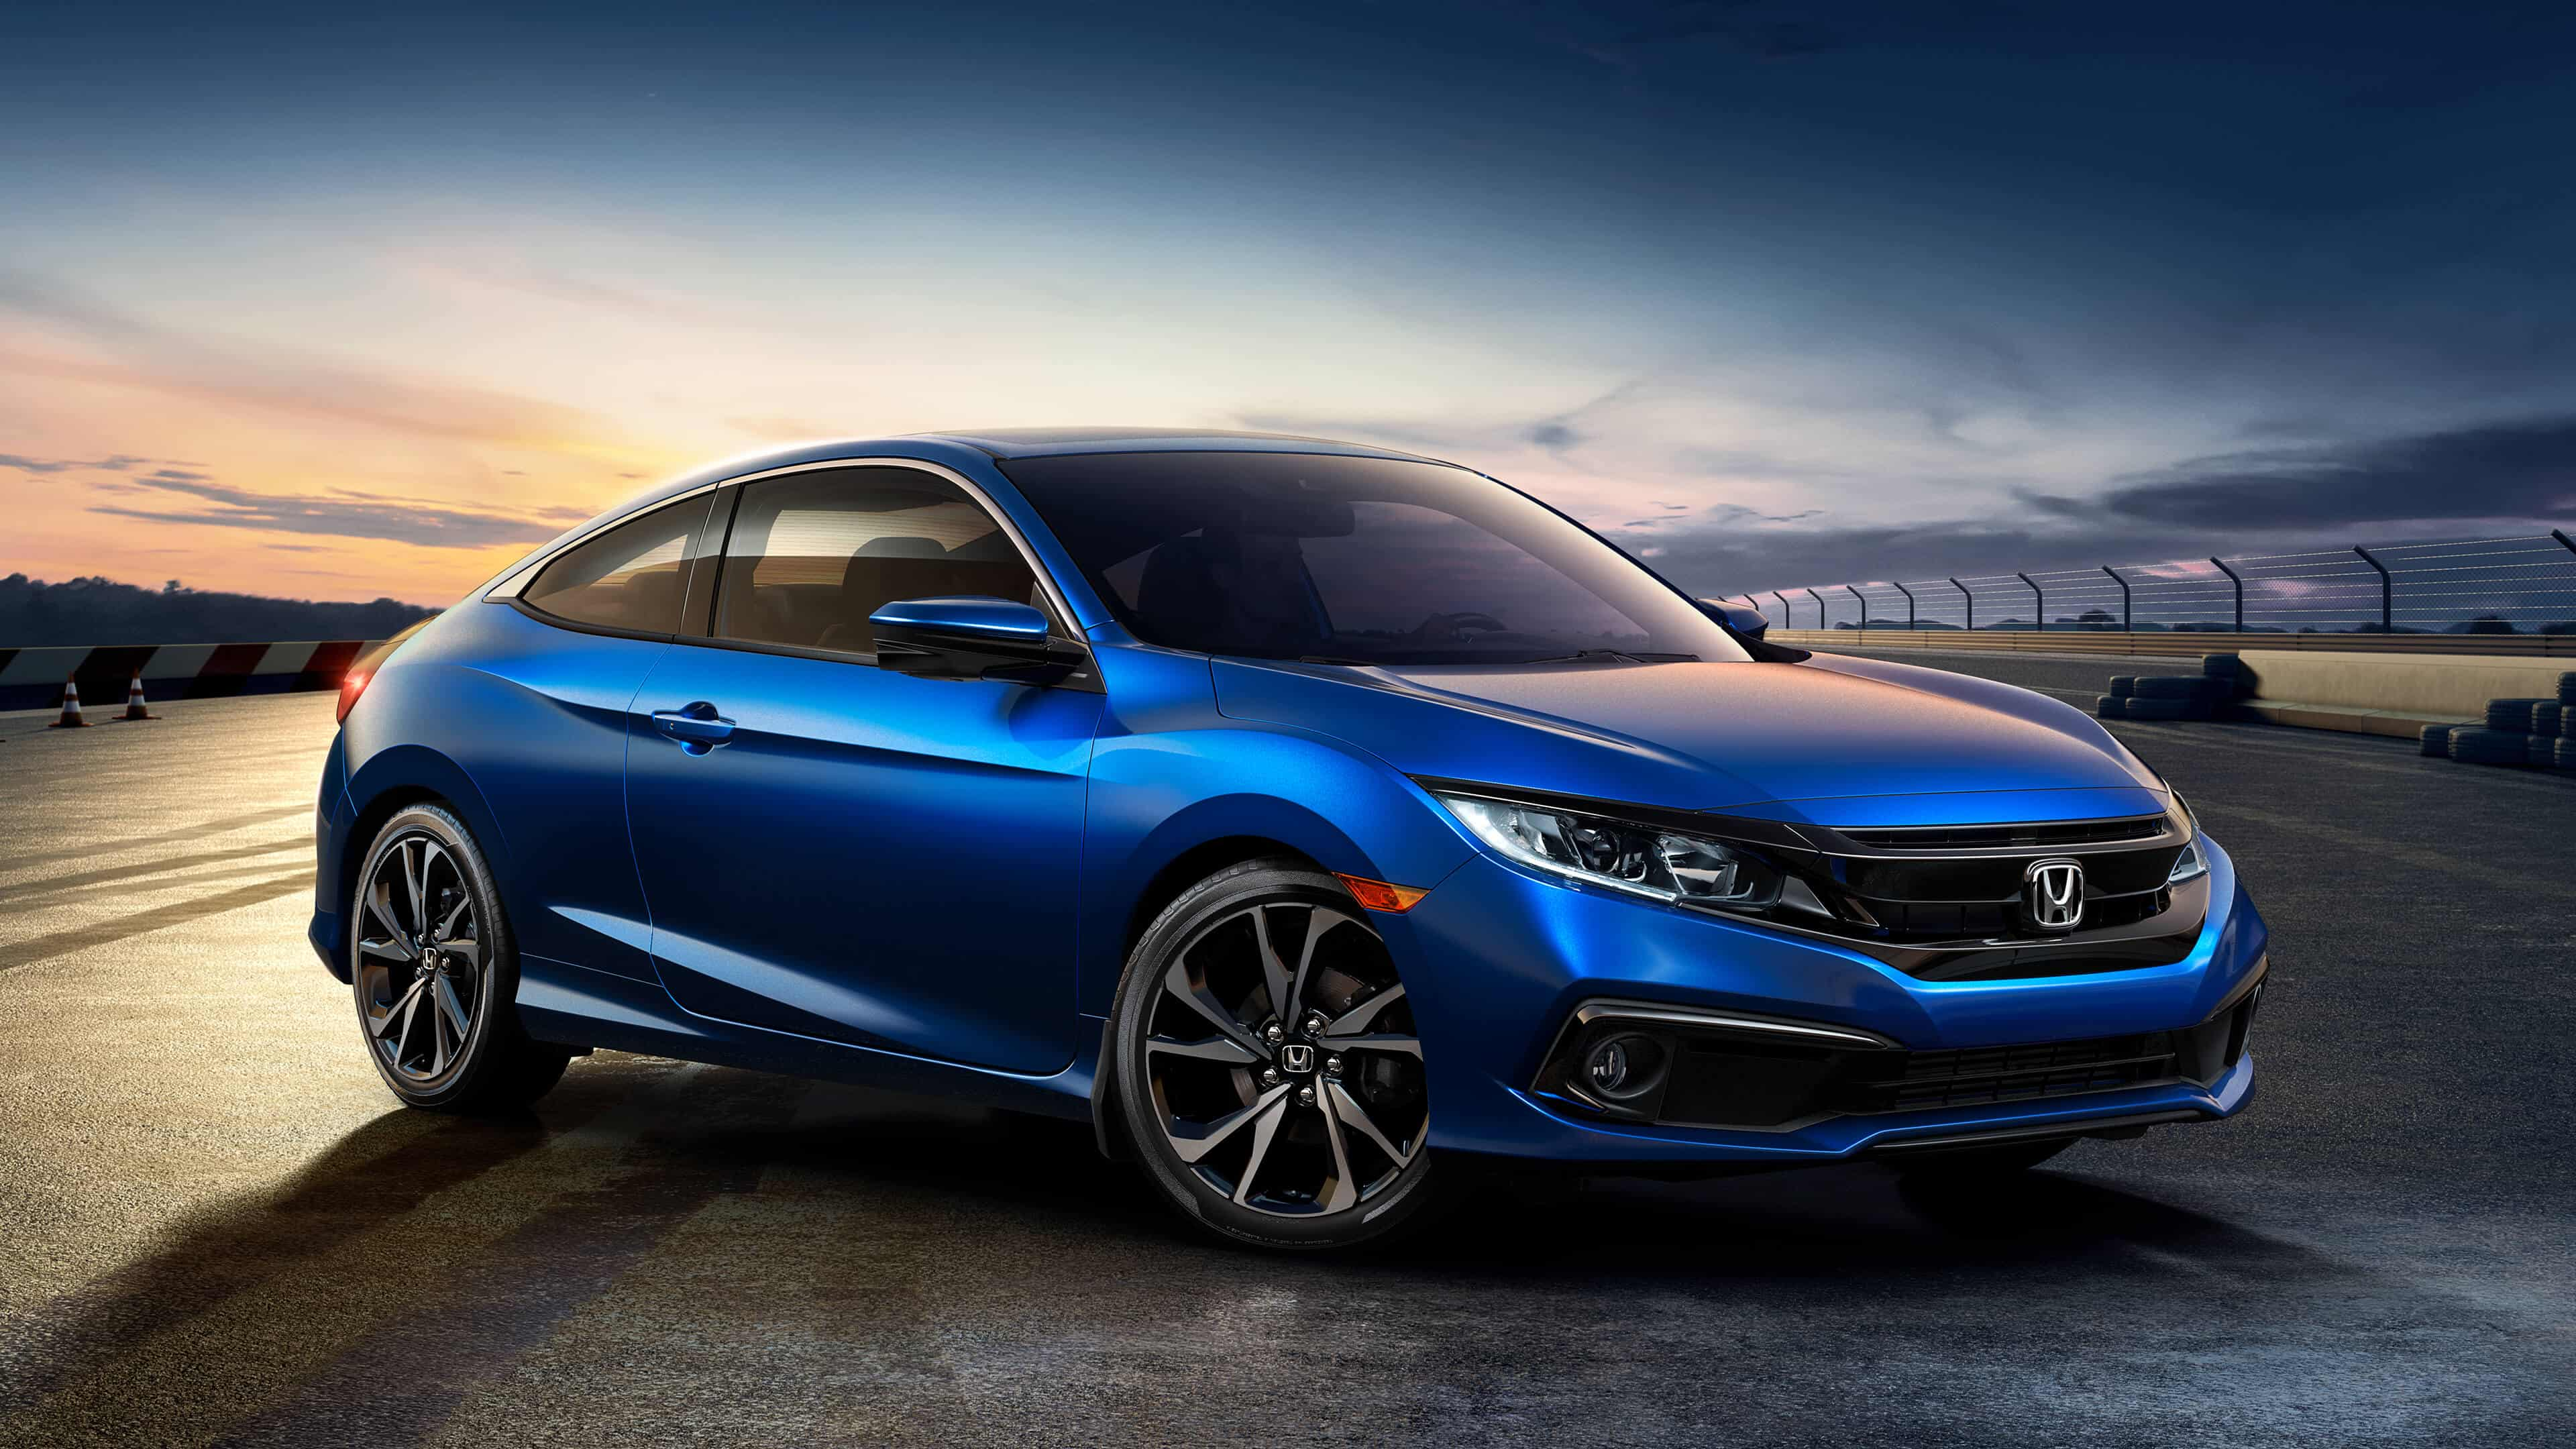 honda-civic-G-2019-honda-ha-noi-01